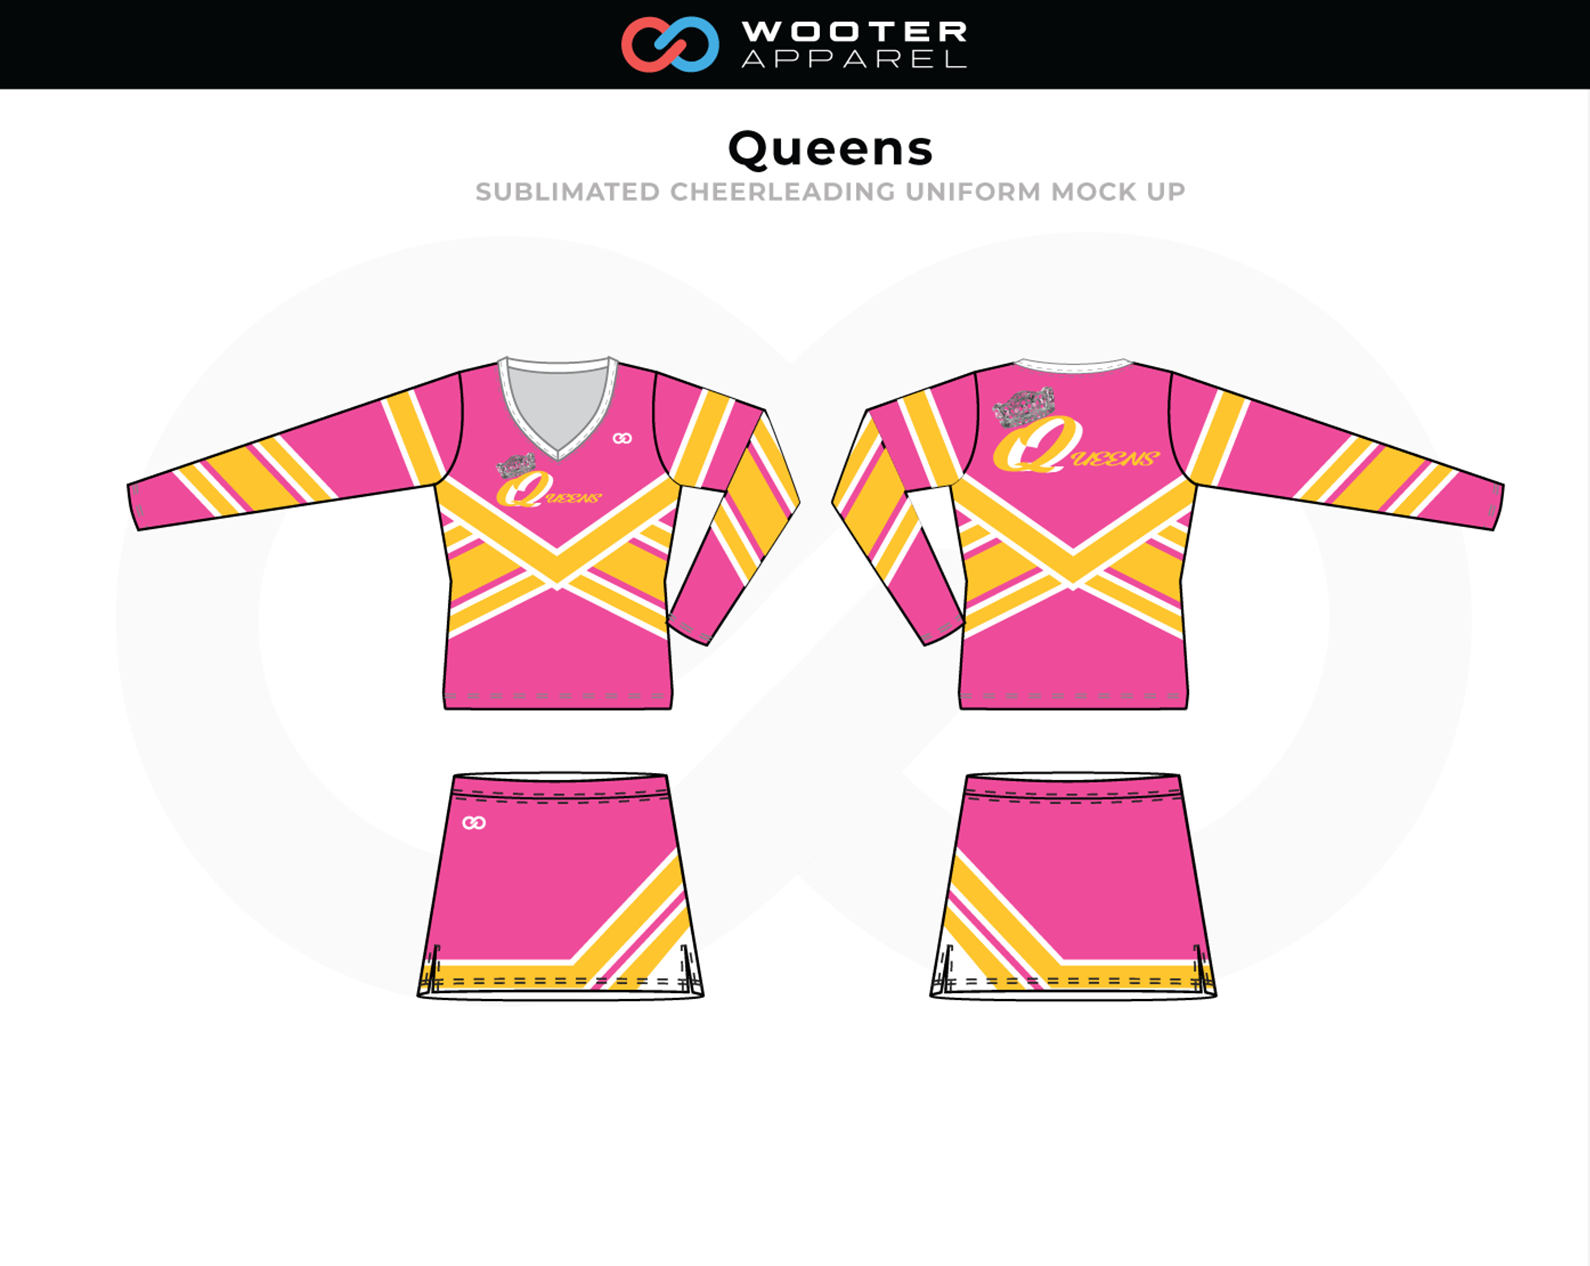 Queens-Sublimated-Cheerleading-Uniform-Mock-Up_v1_2018.png